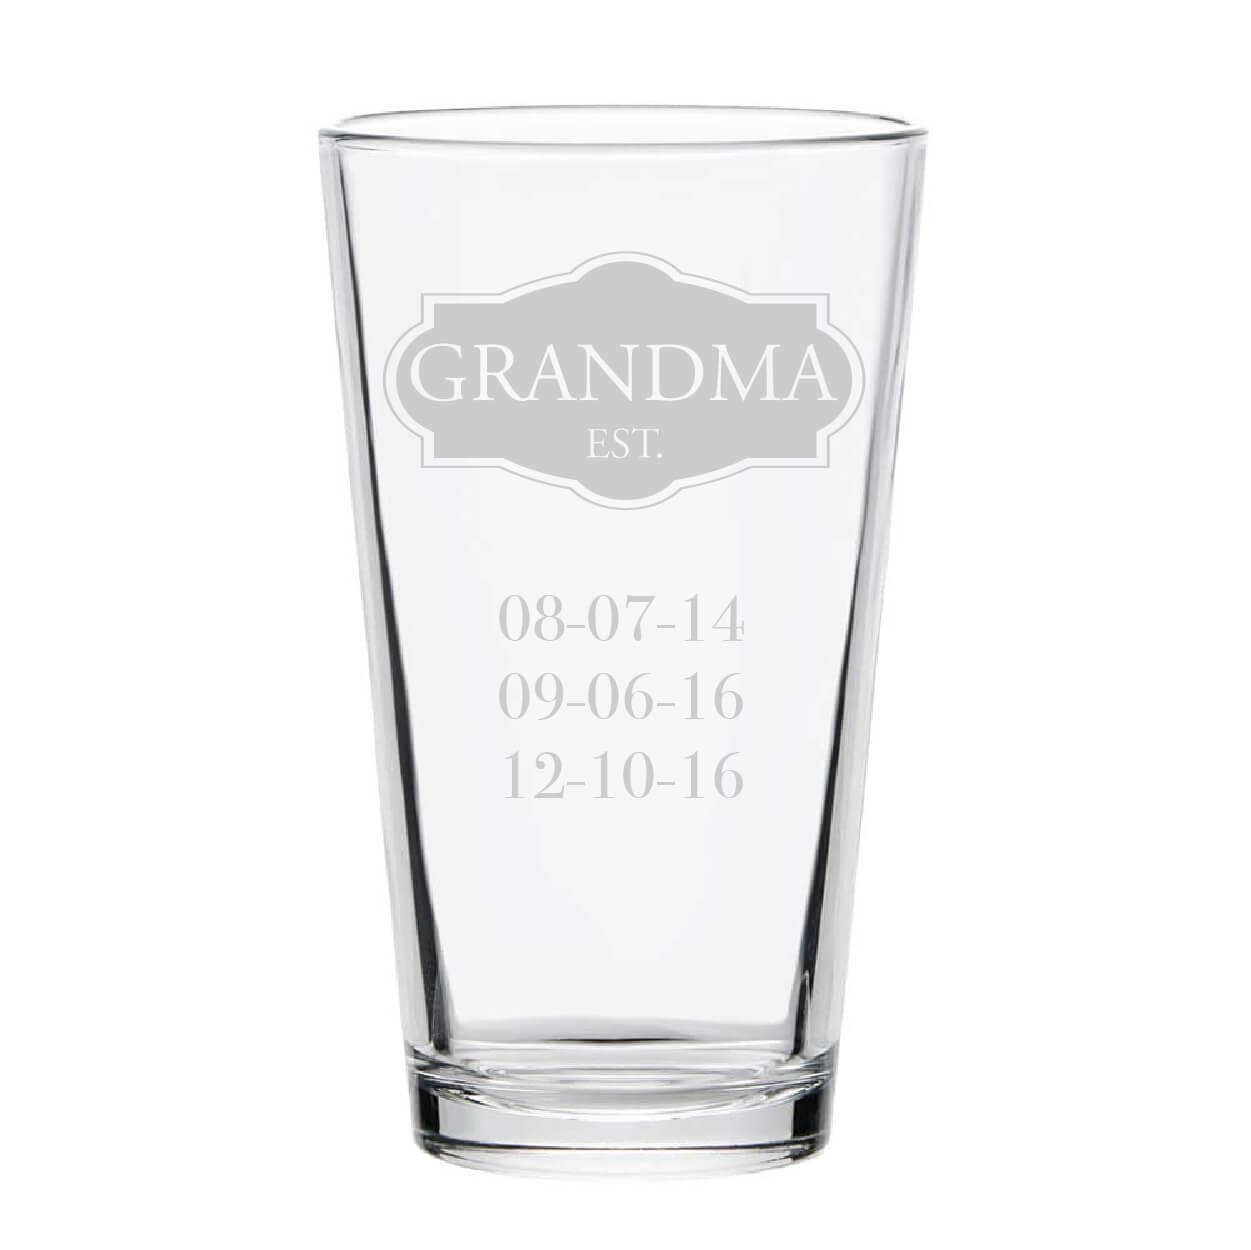 Grandma Established Personalized Pint Glass